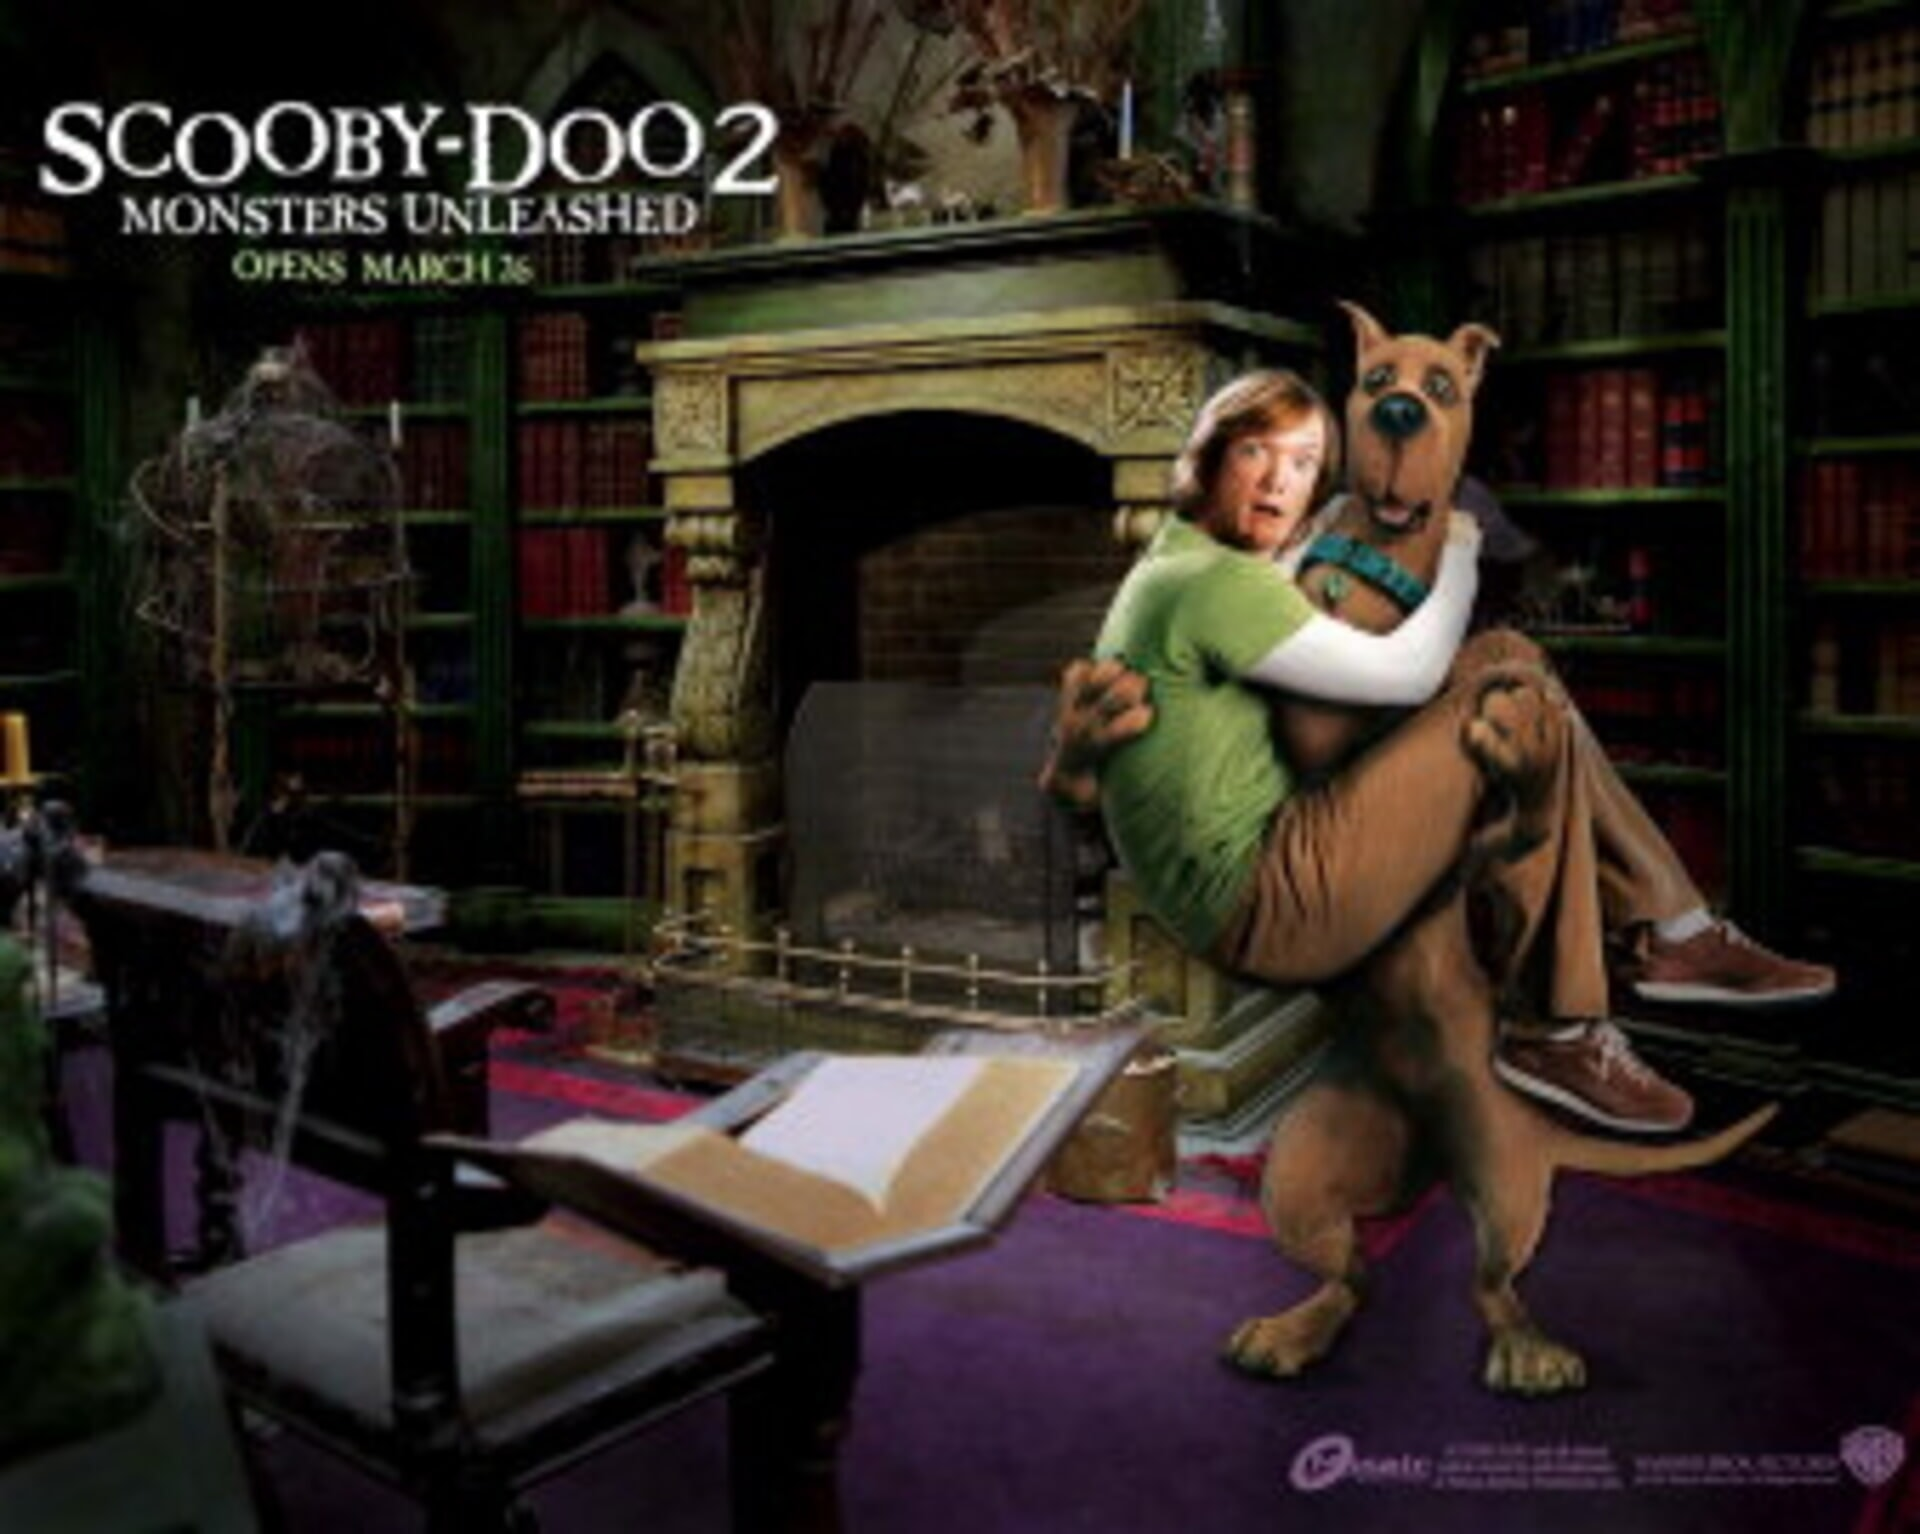 Scooby-Doo 2: Monsters Unleashed - Image 9